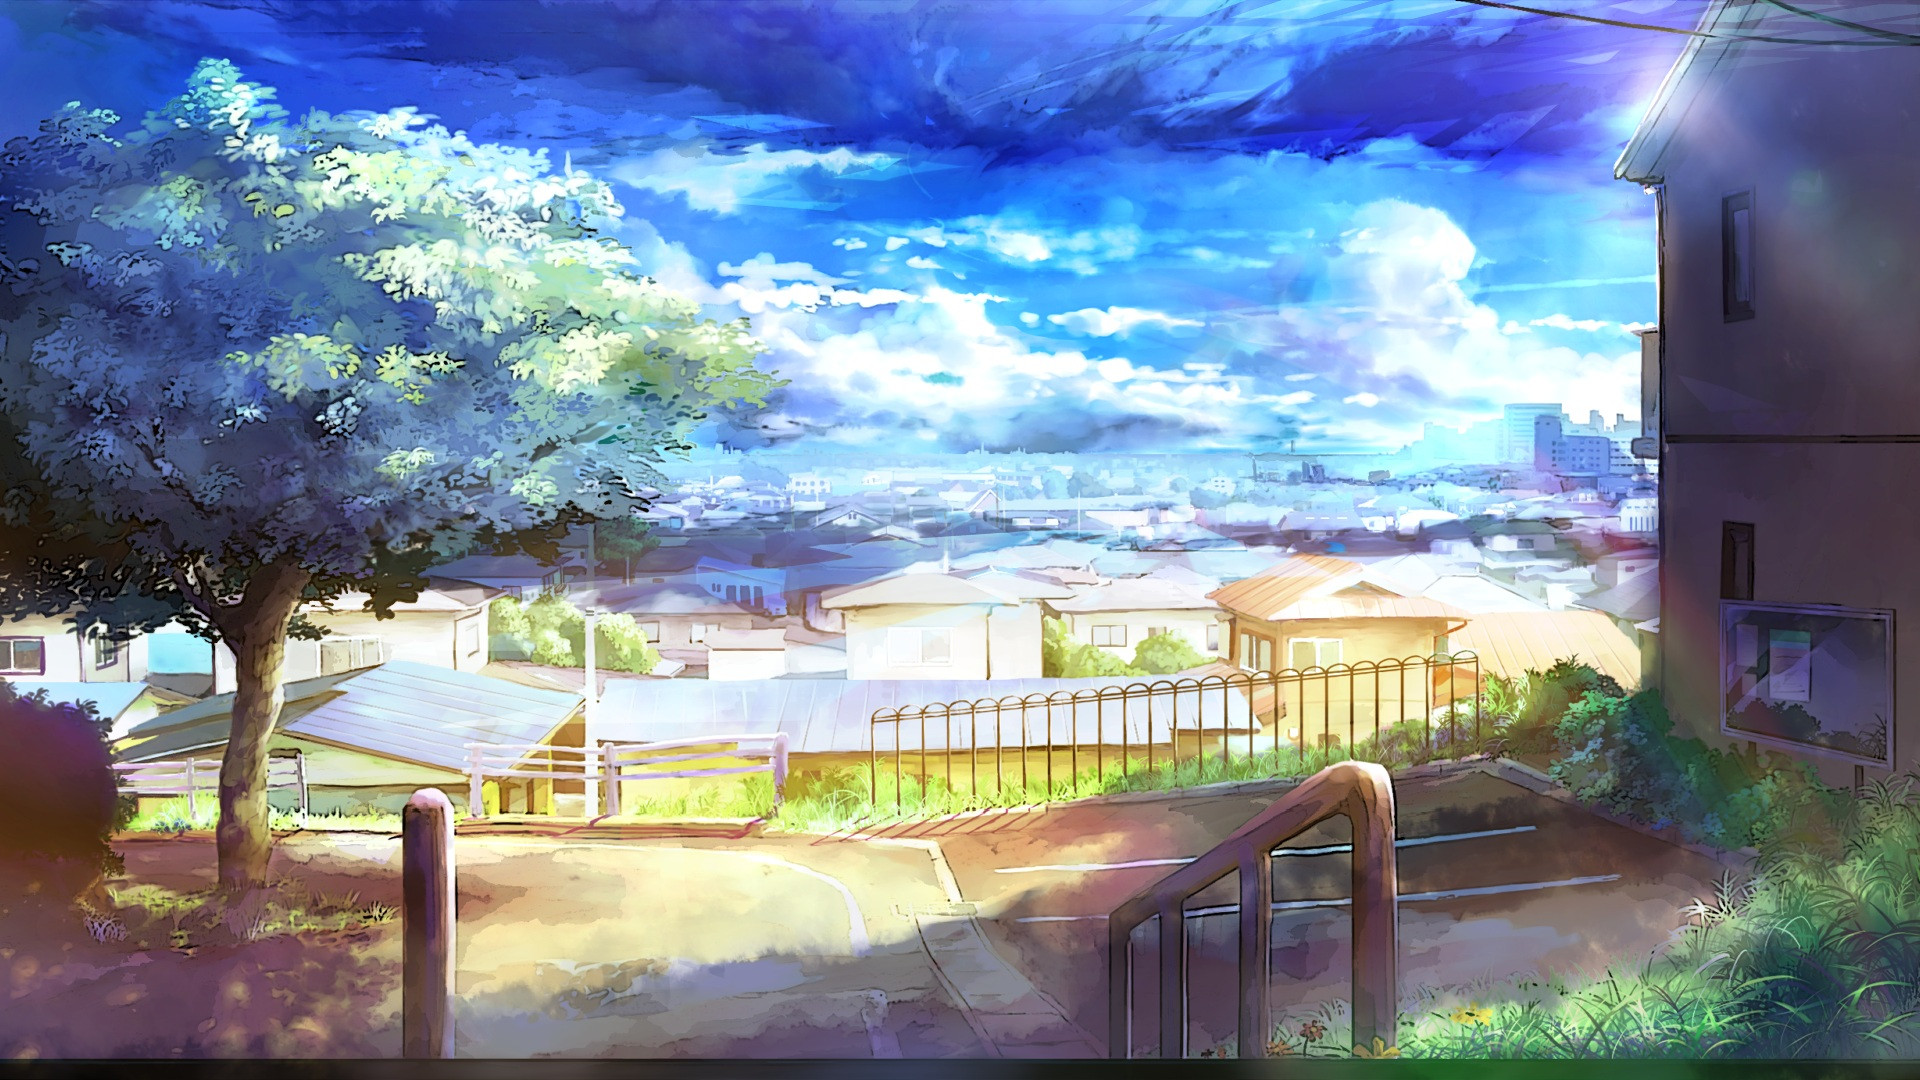 Best ideas about Anime Landscape Wallpaper . Save or Pin Anime Landscape Now.